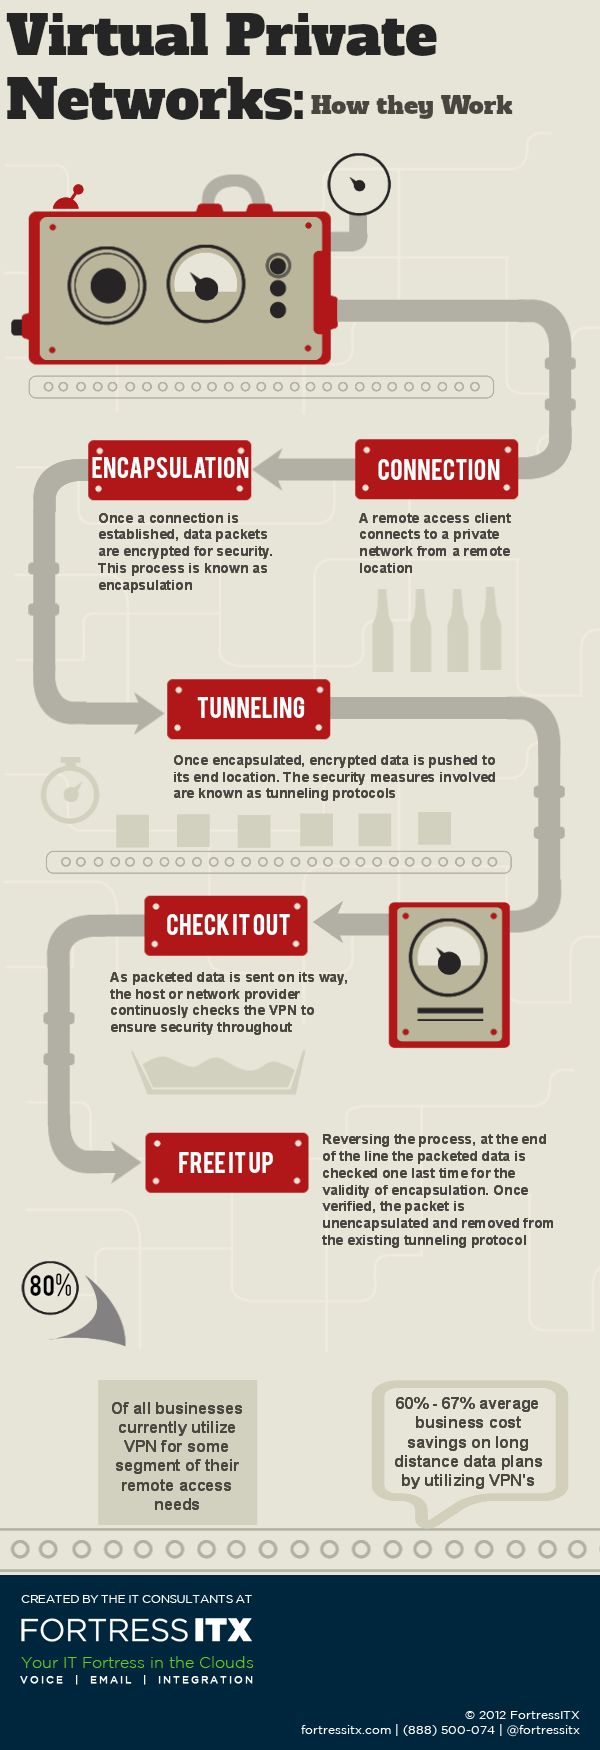 #Infographic Tuesday: Virtual Private Networks: How they Work    www.fortressitx.com/blog  www.fortressitx.com